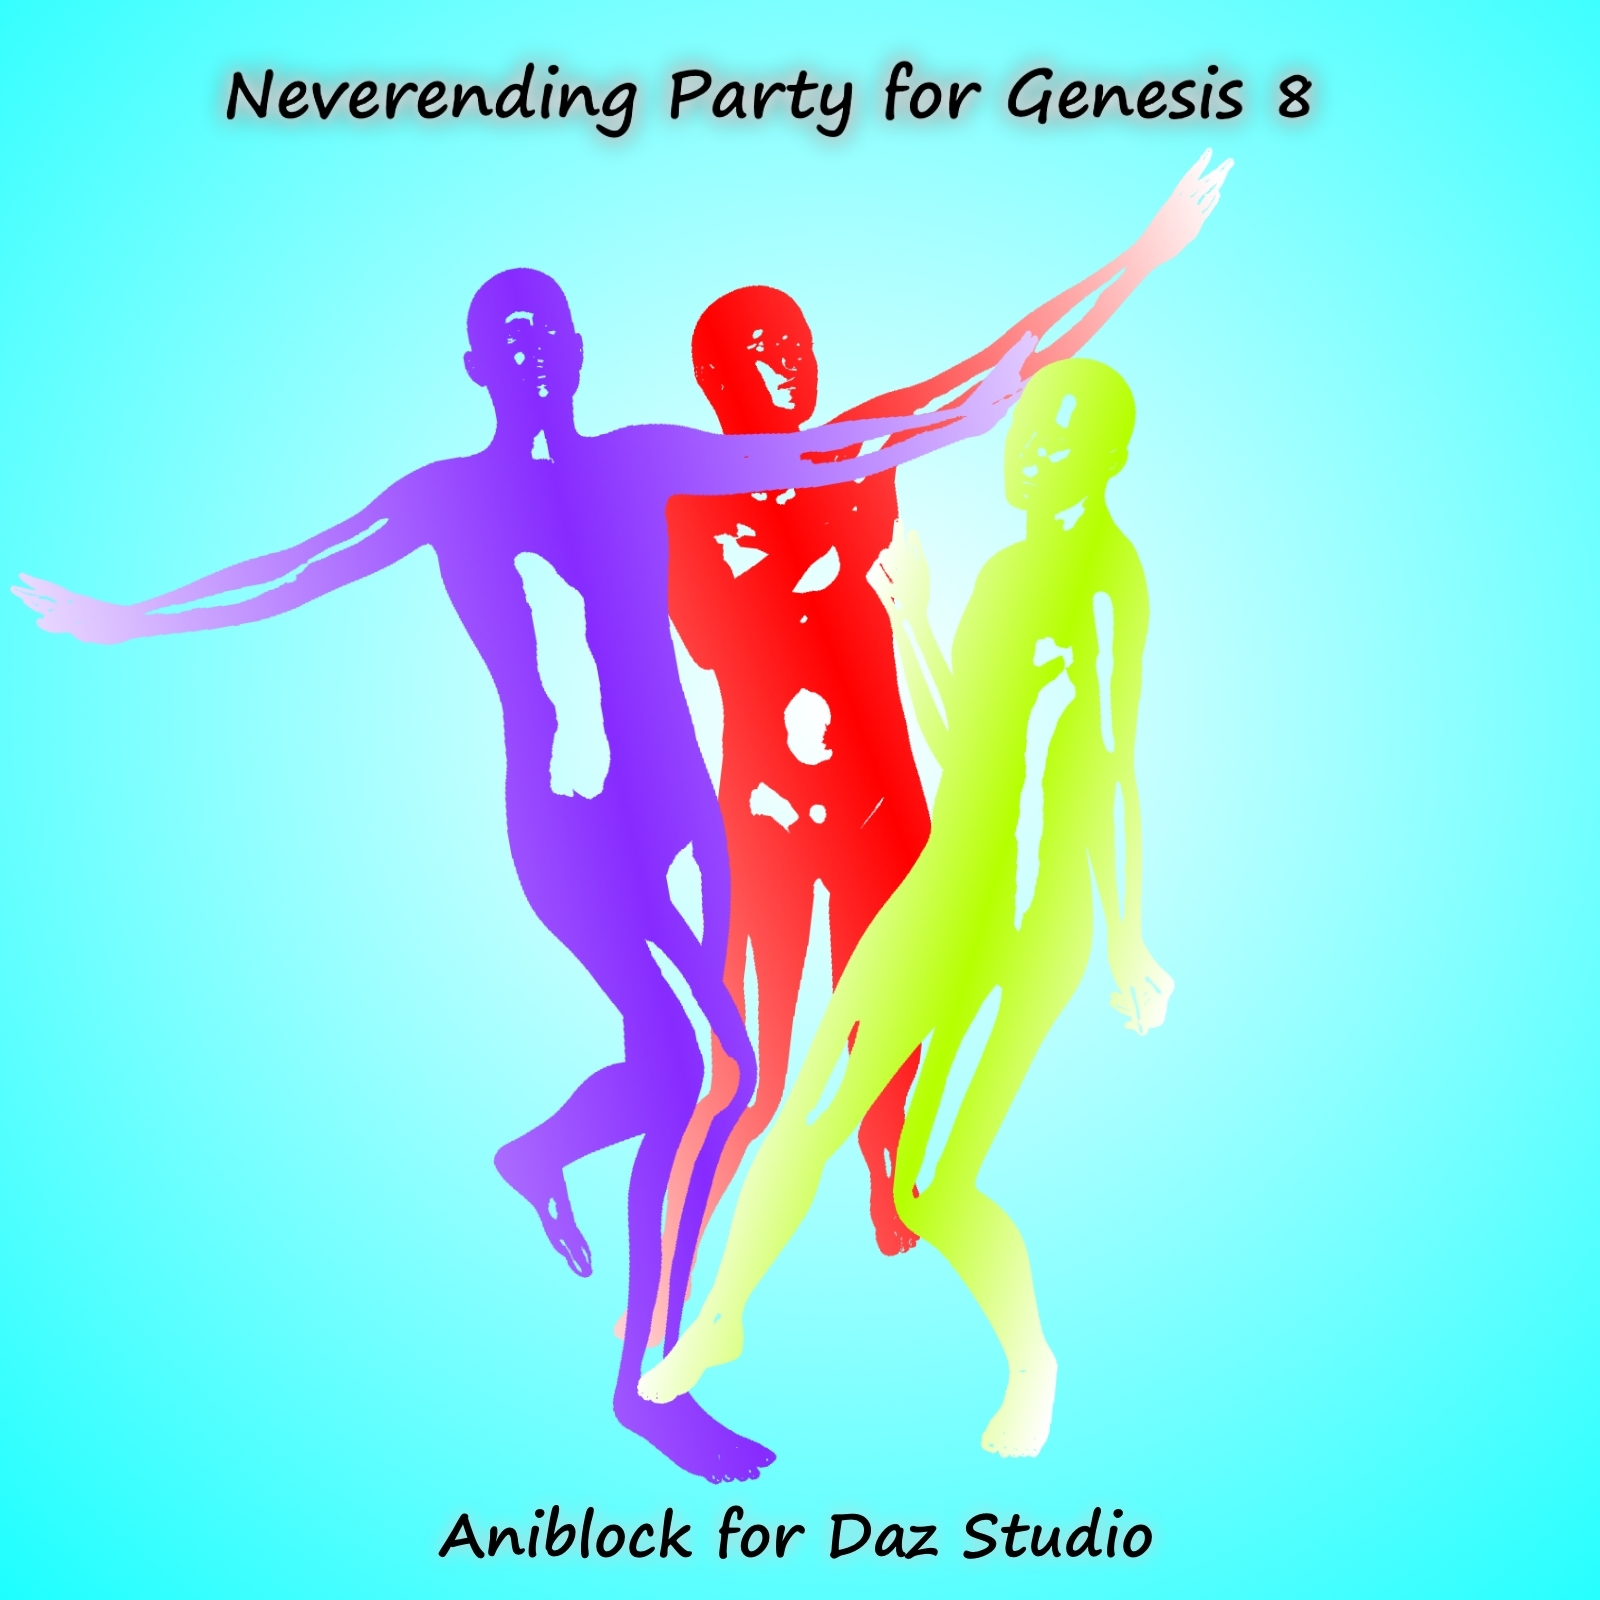 Neverending Party for Genesis 8